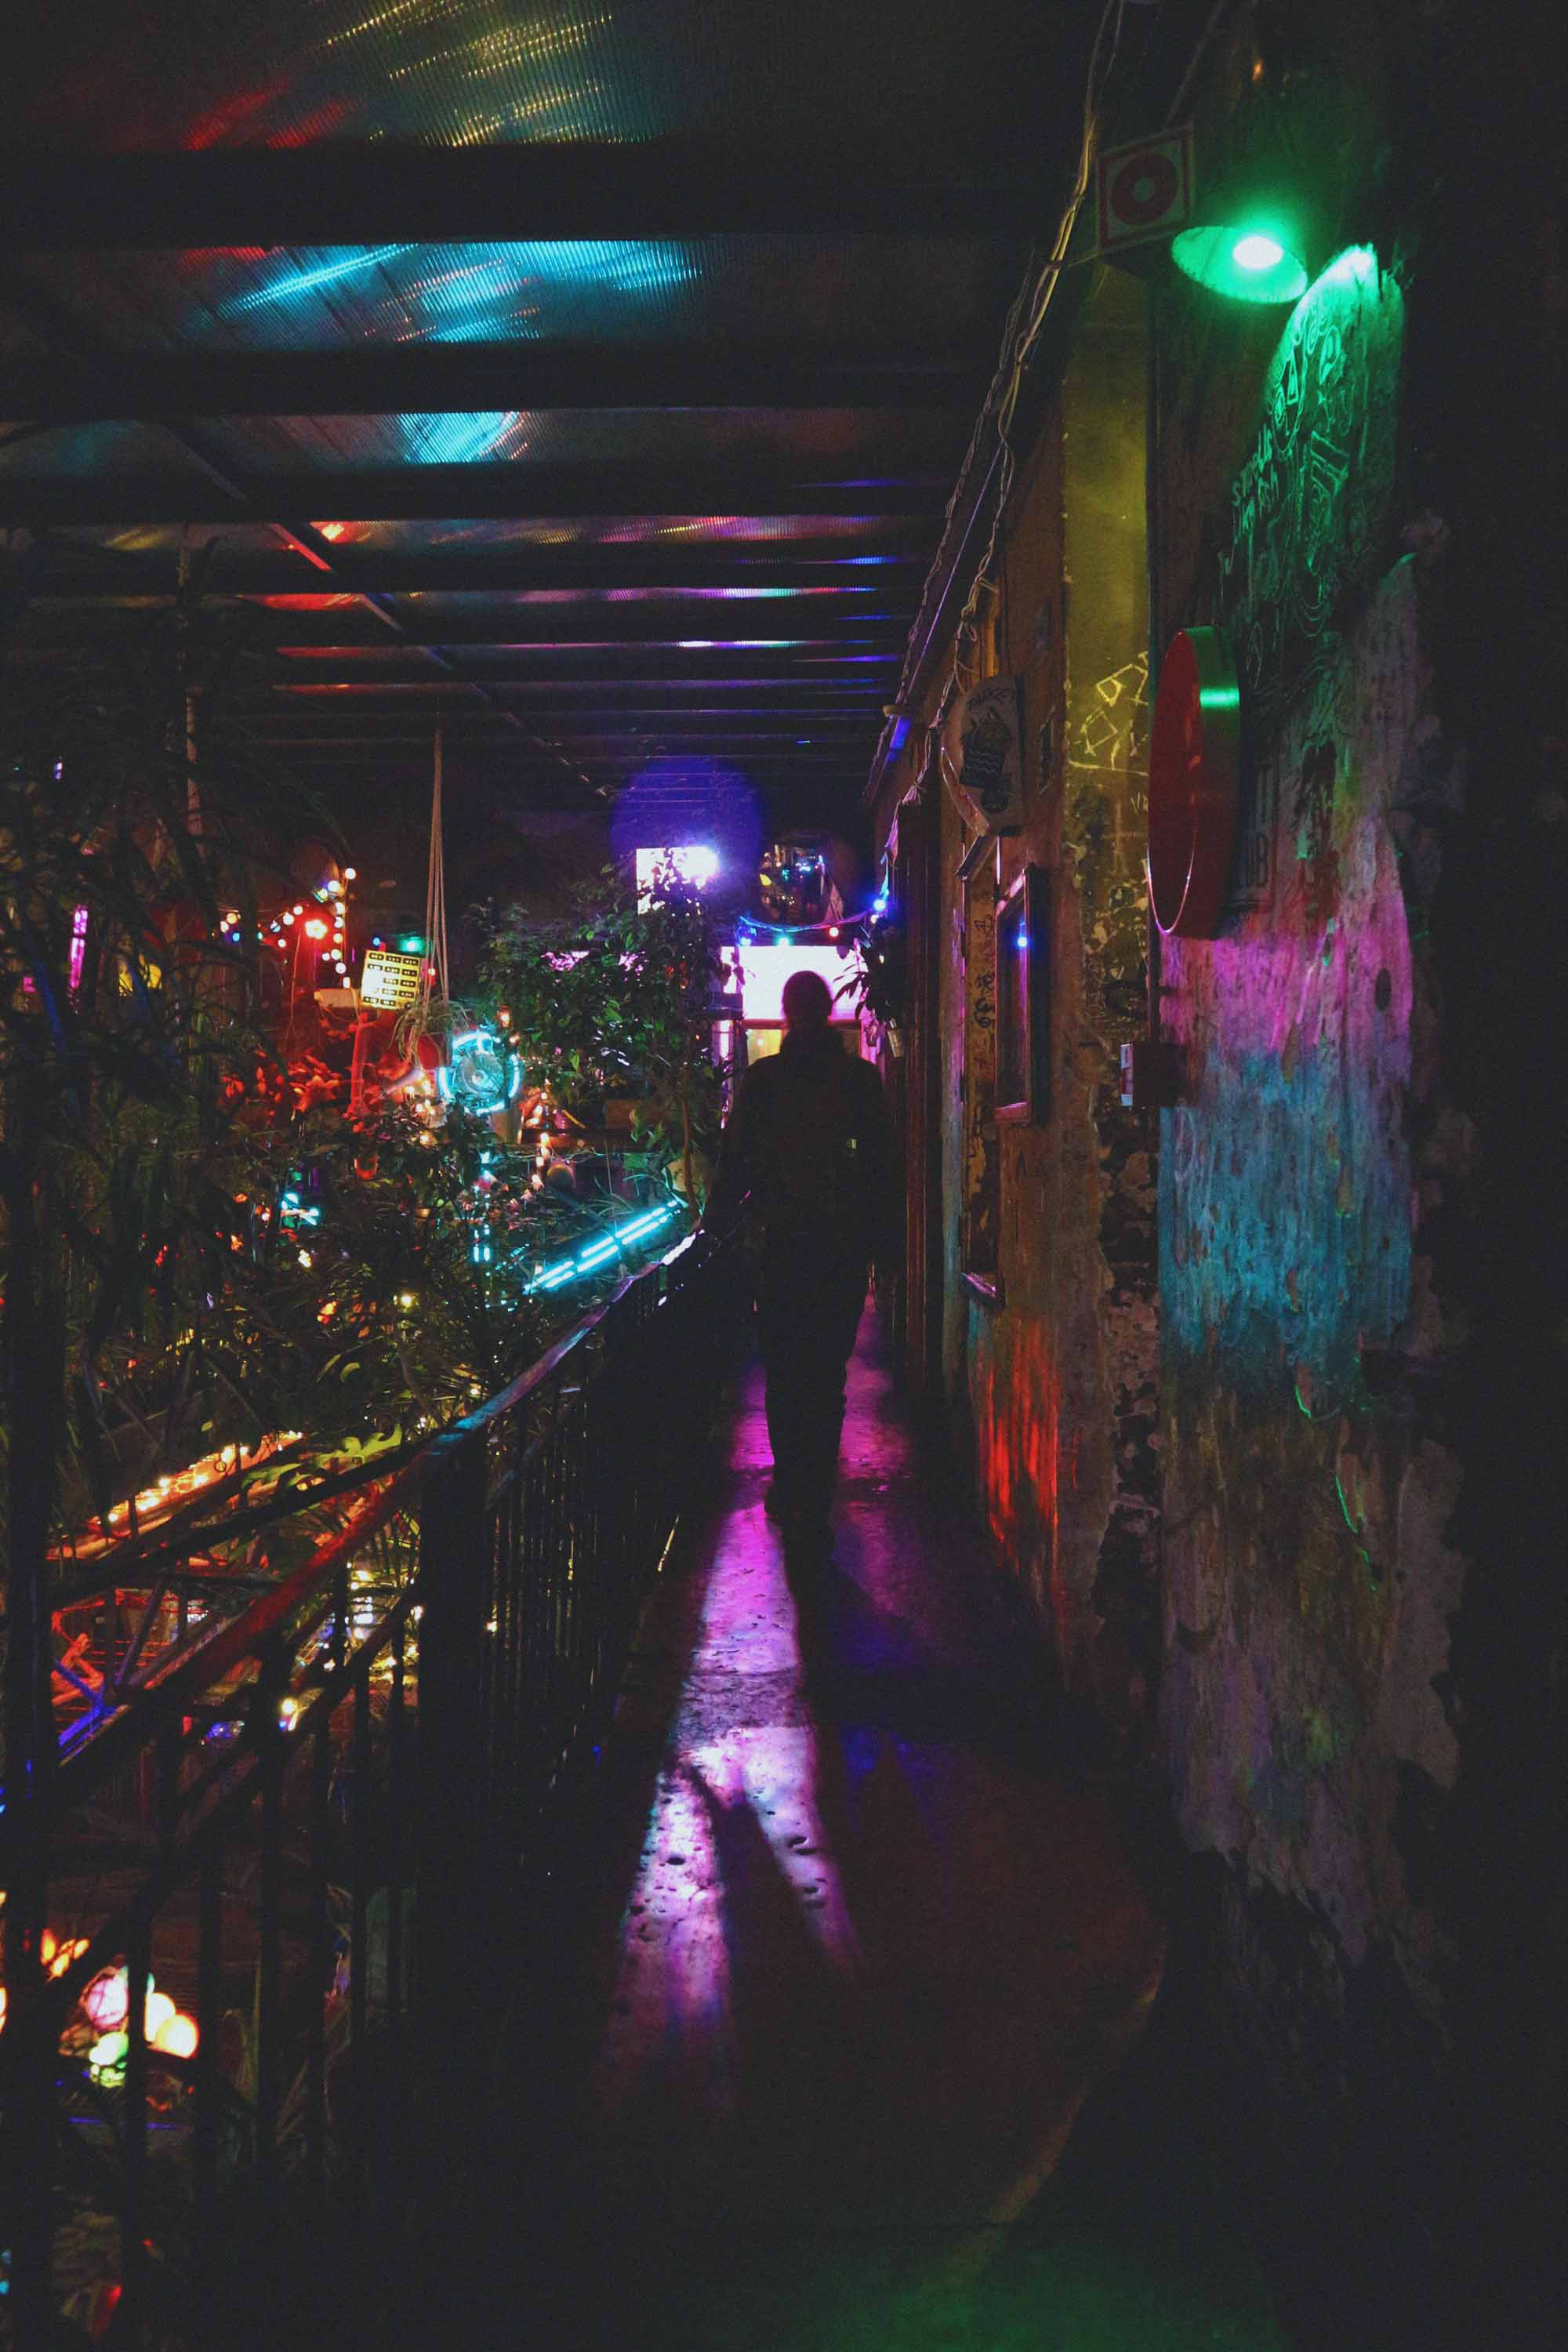 Szimpla Kert by night, palm plants and colourful lighting